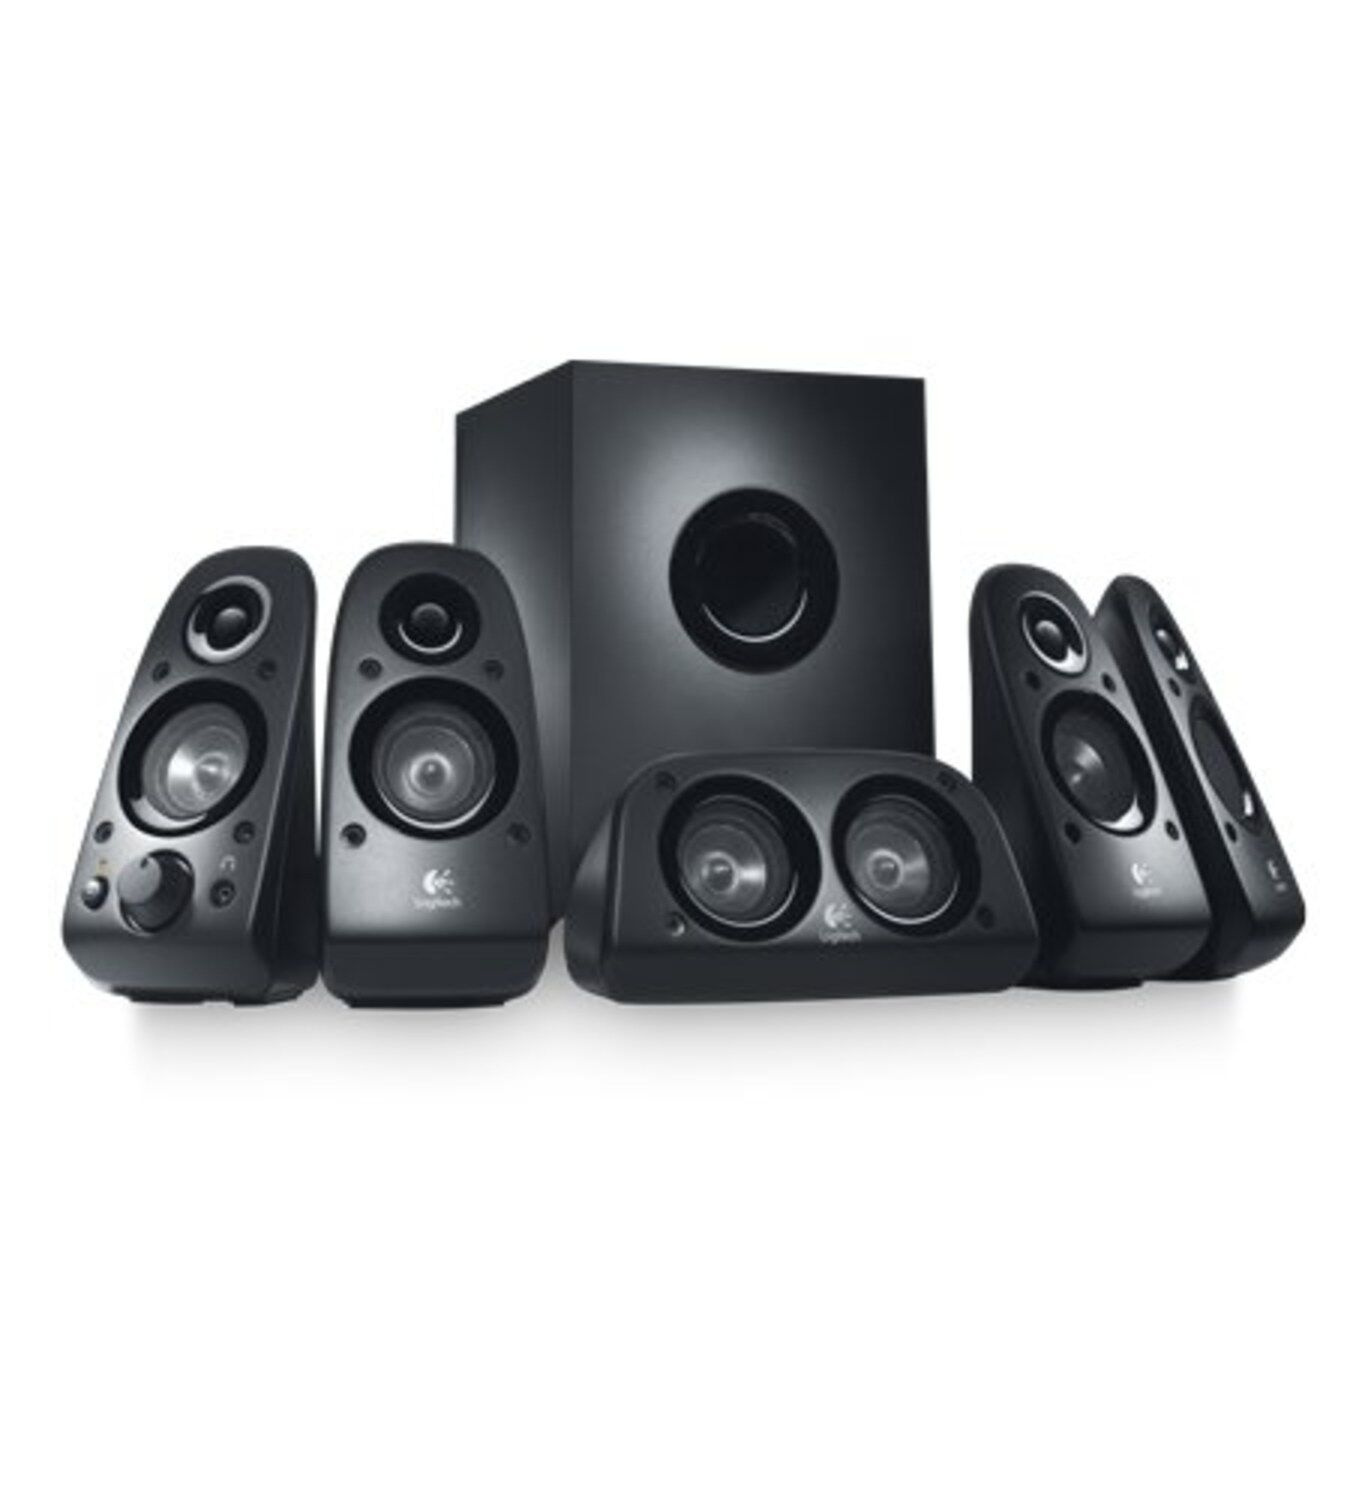 new surround sound speakers z506